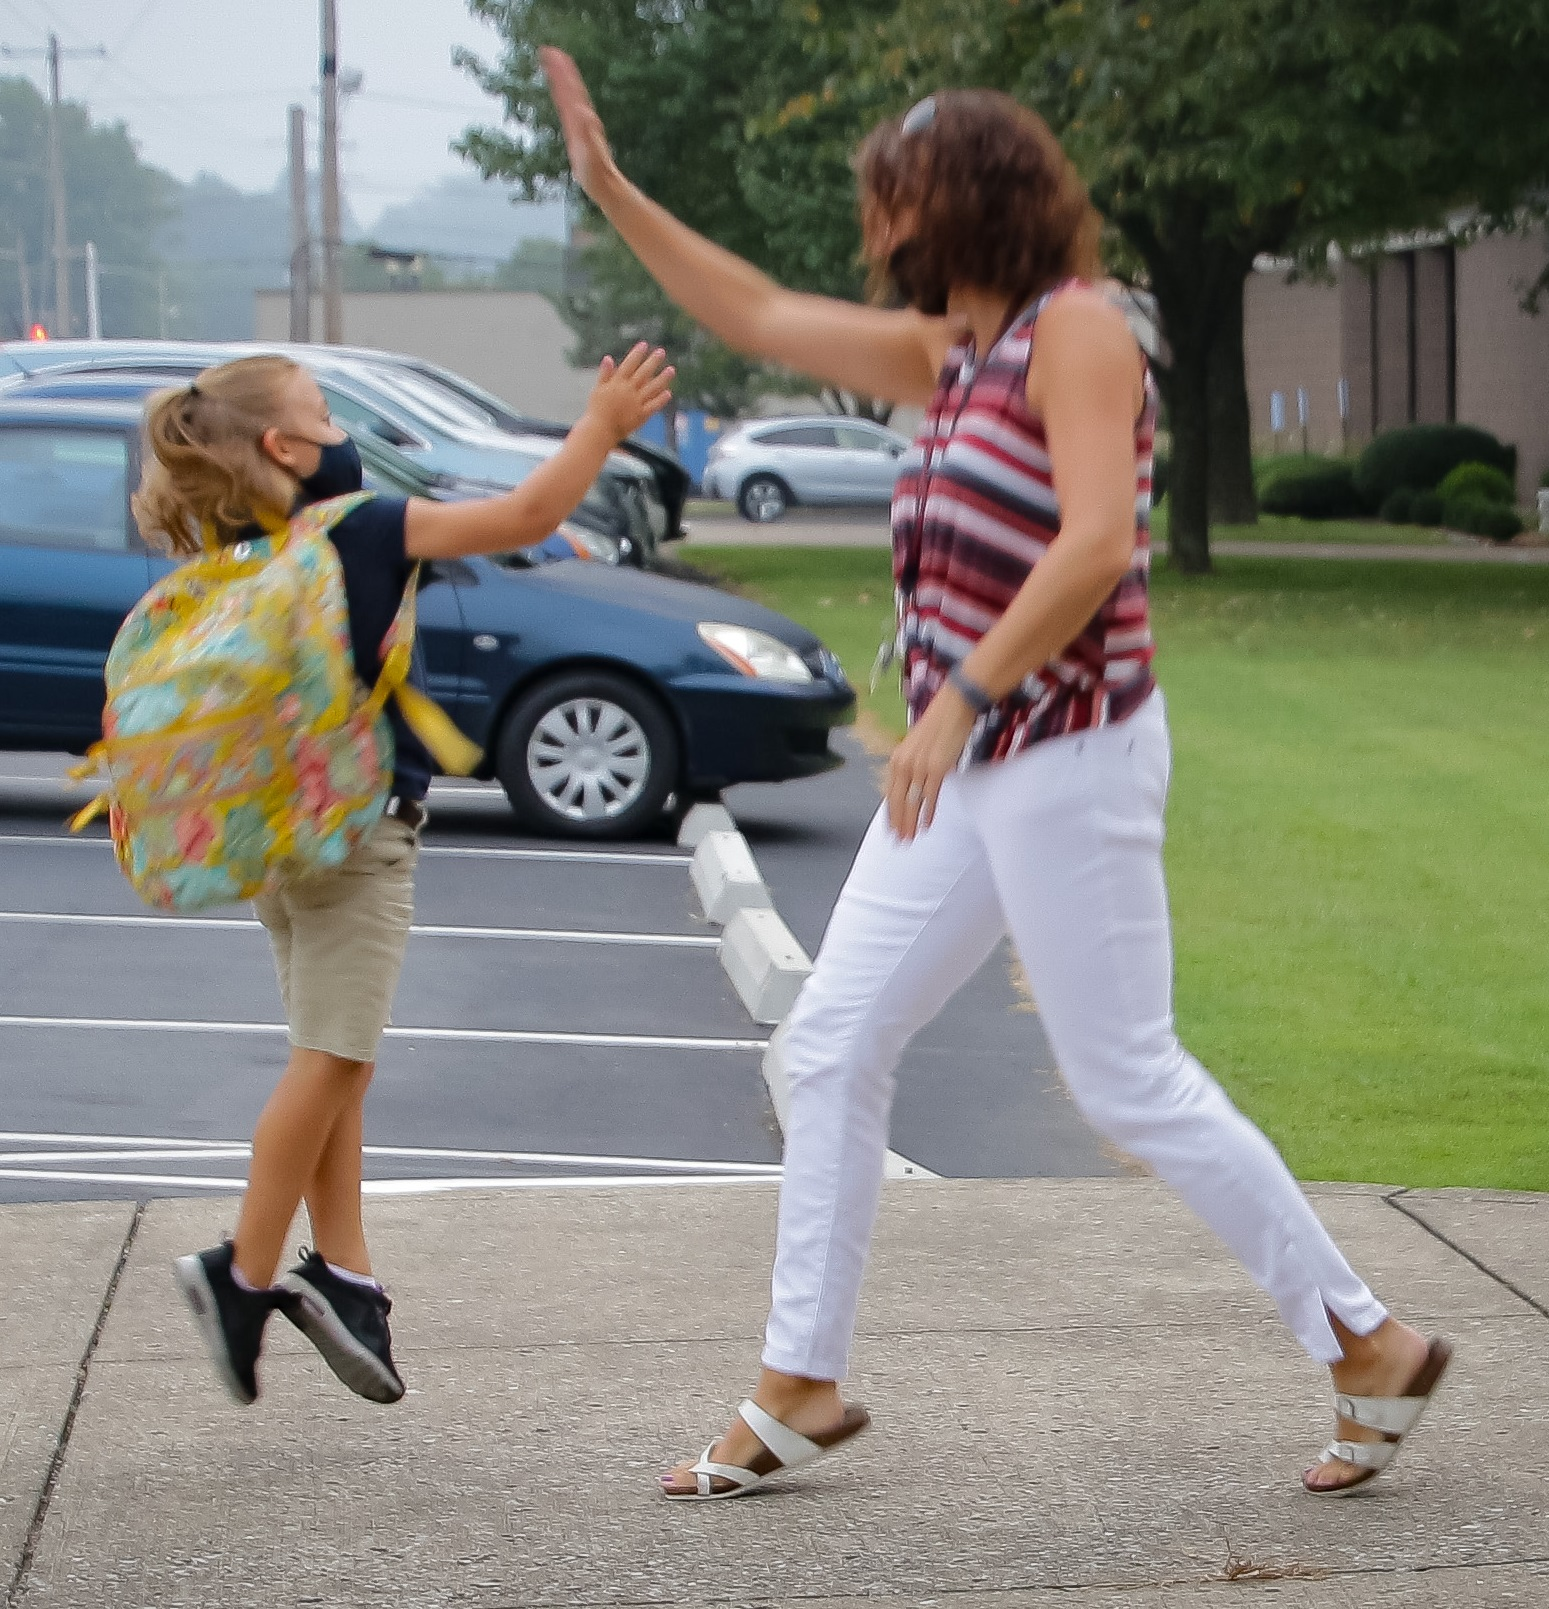 First-grader Charlotte Mosbey, left, greets Holy Redeemer School principal Andrea Dickel as she arrives for school on Sept. 11. Dickel has been holding Friday morning dance parties to welcome students to school. Many students join her for a quick dance when they arrive, but Charlotte opted for a high five! The Message photo by Tim Lilley